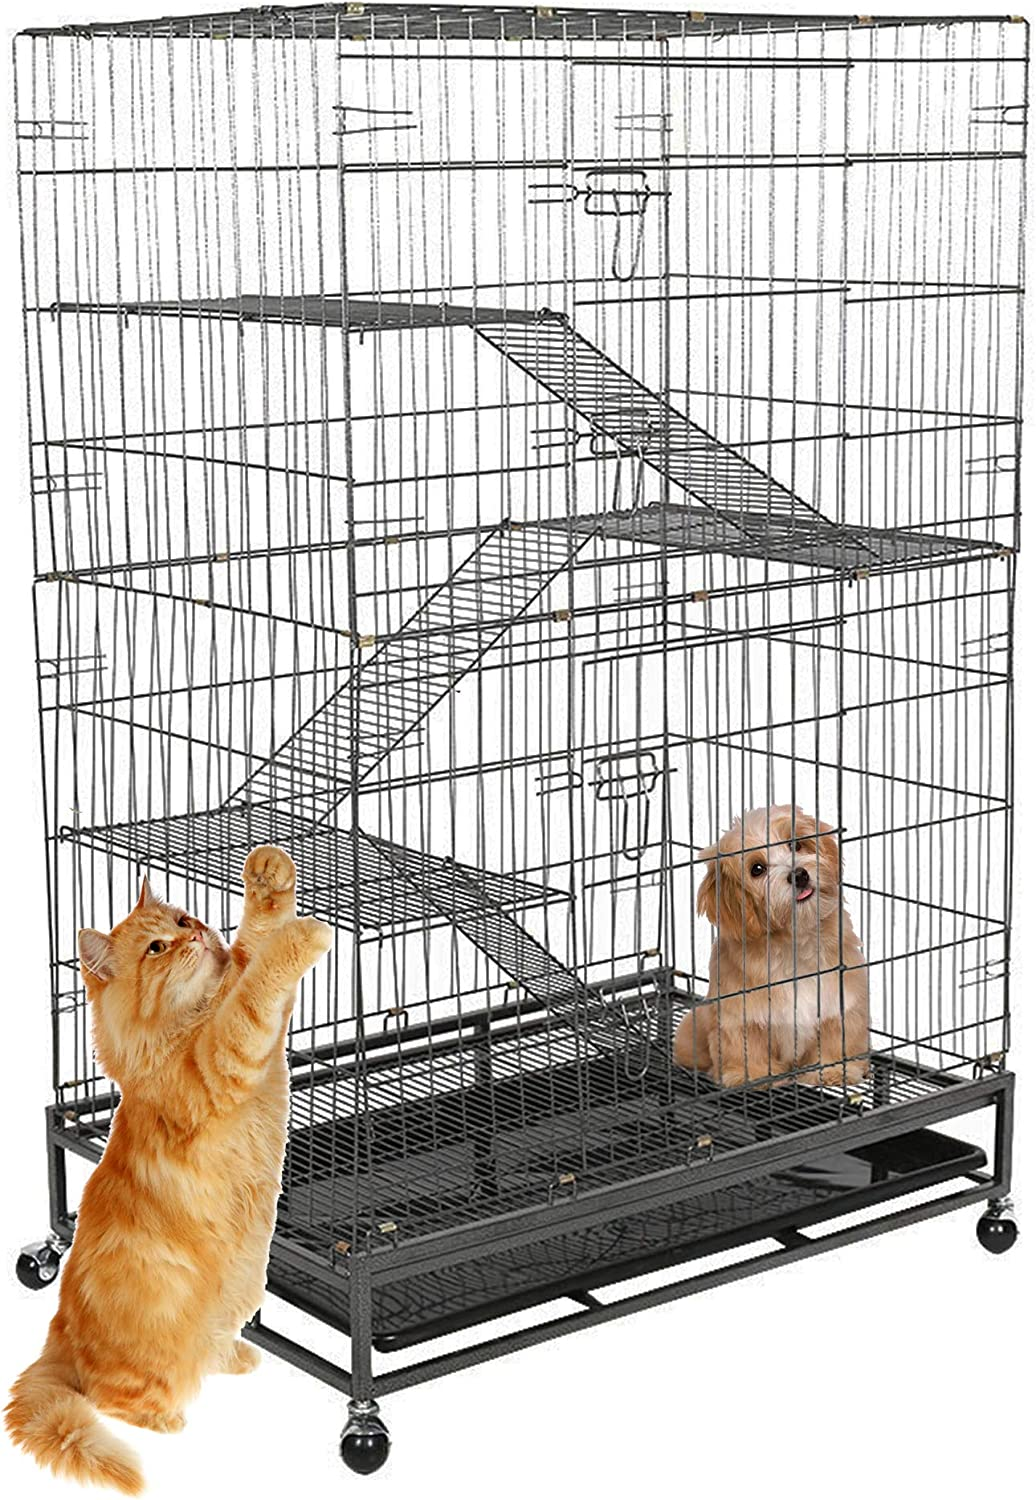 KARMAS PRODUCT Pet Cage Cat Dog Crate Folding Large Metal Cage w Removeable Leak-Proof Tray, Climbing Ladders, 4 Wheels